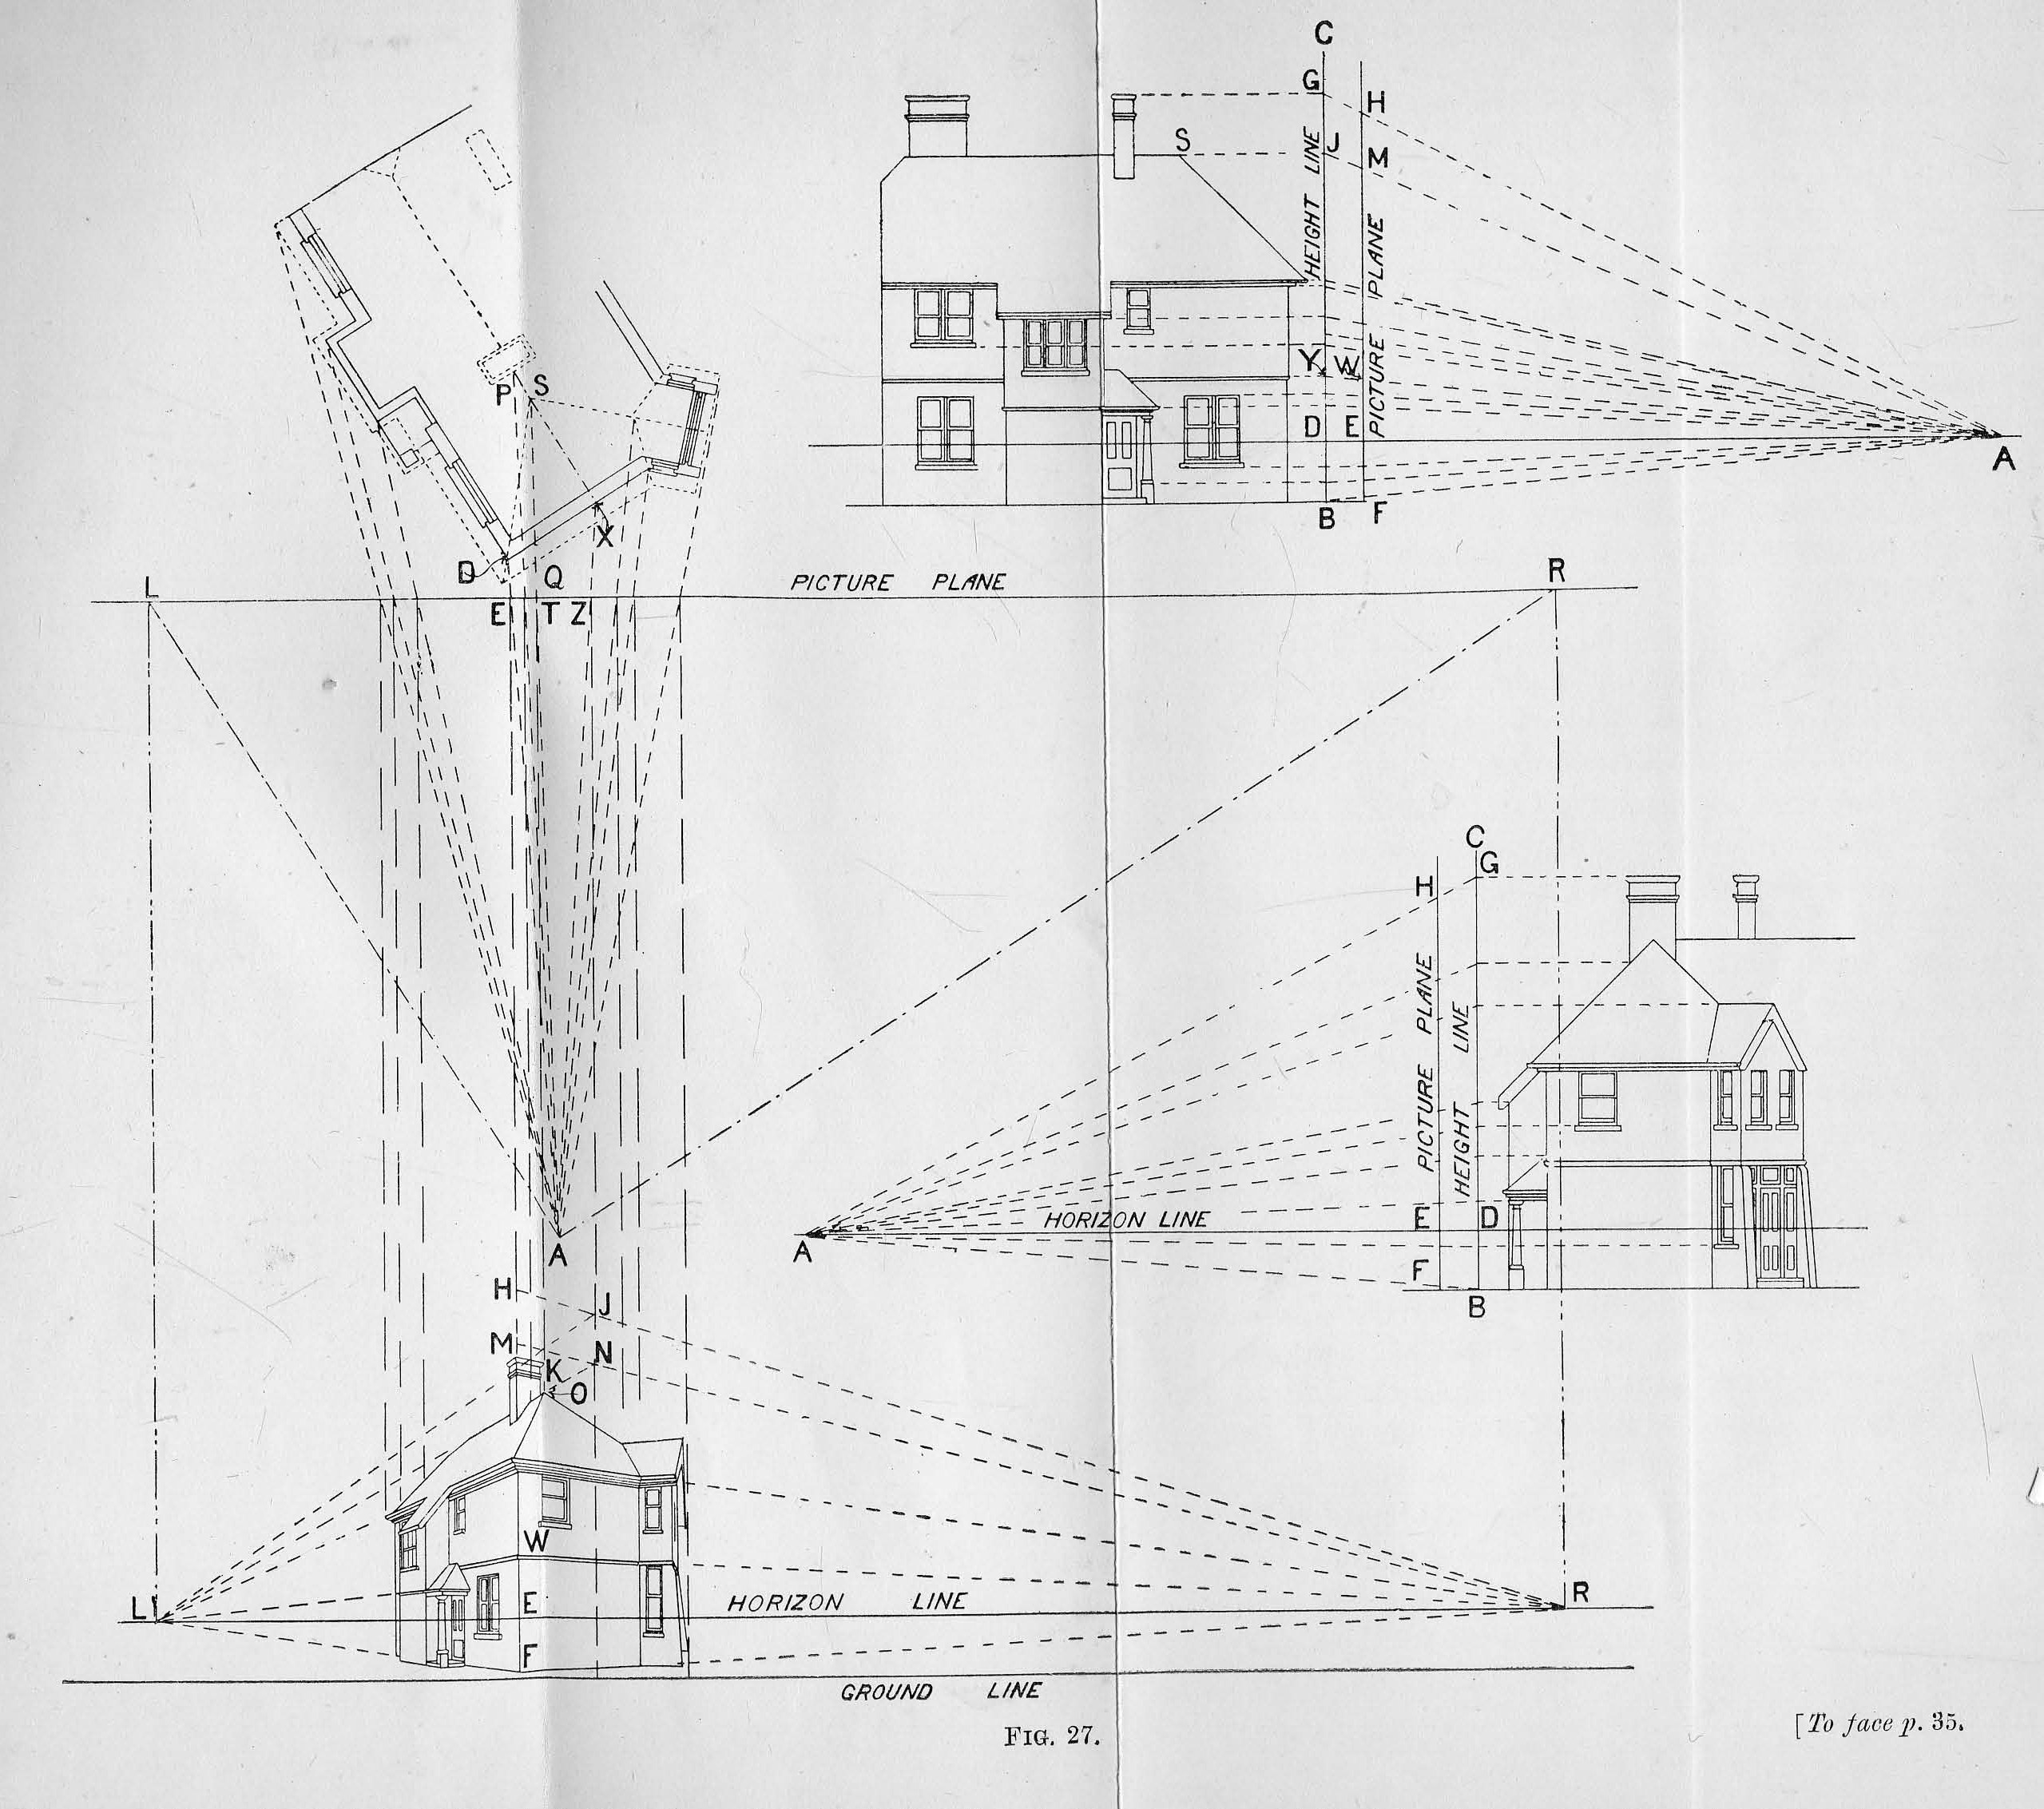 The principles of architectural perspective : prepared chiefly for the use of students : with chapters on isometric drawing and the preparation of finished perspectives : illustrated with fifty-one diagrams and eight drawings by various architects / by G. A. T. Middleton